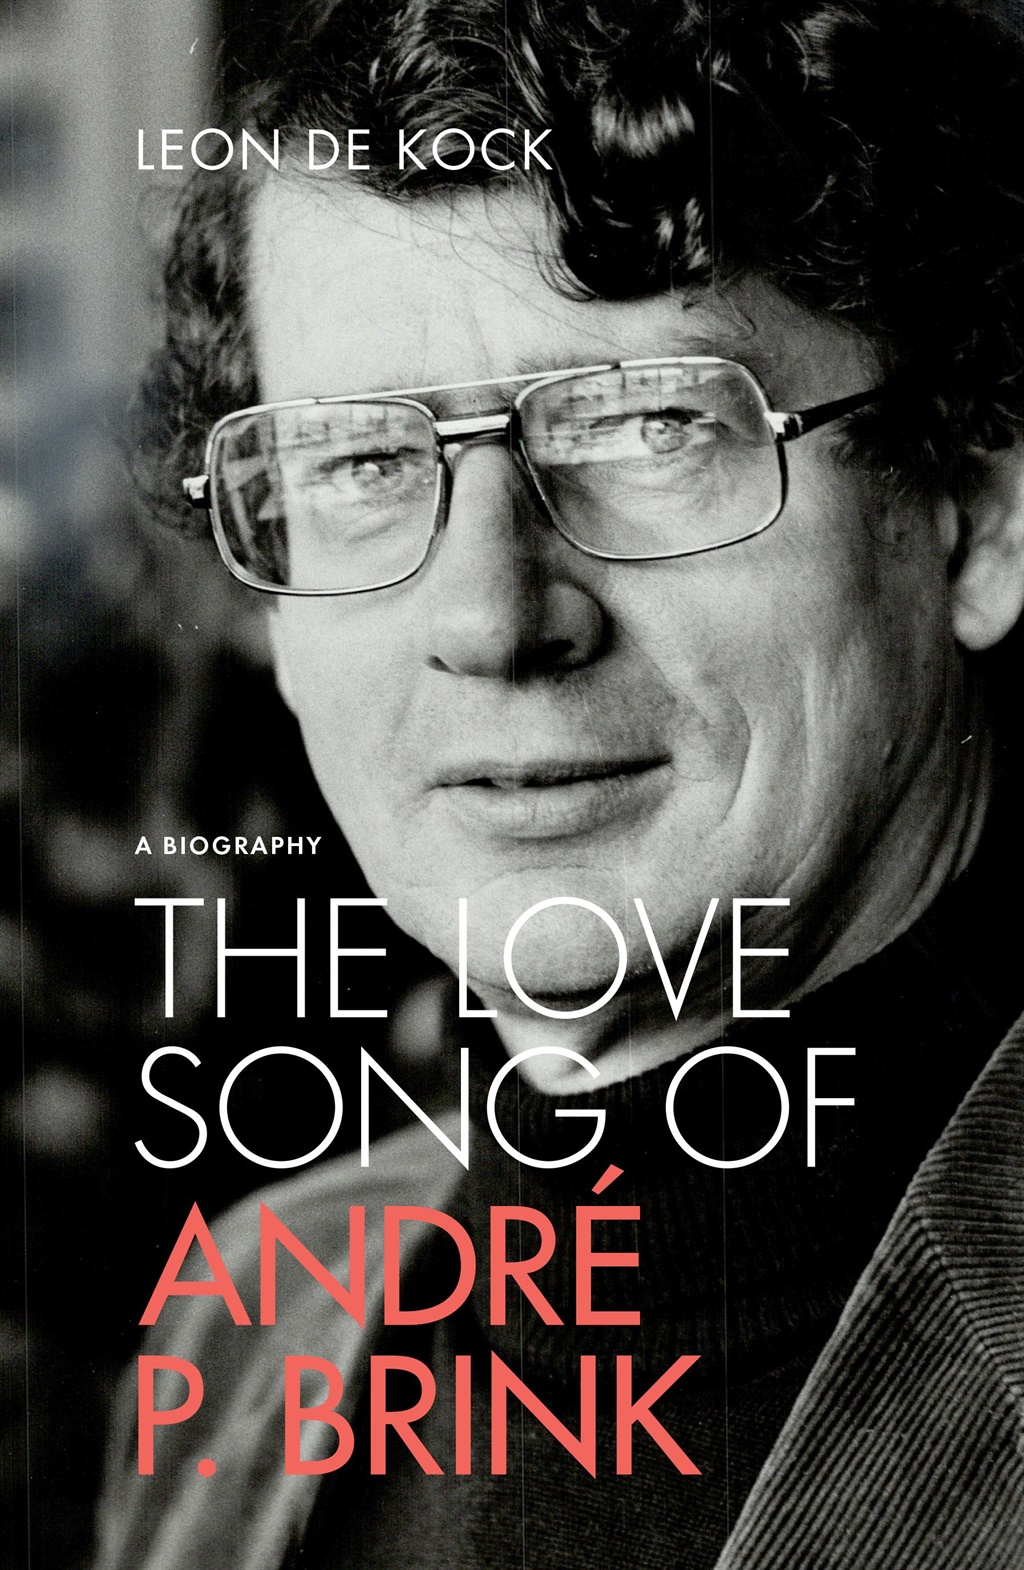 This is an extract from The Love Song of André P Brink by Leon de Kock published by Jonathan Ball Publishers.